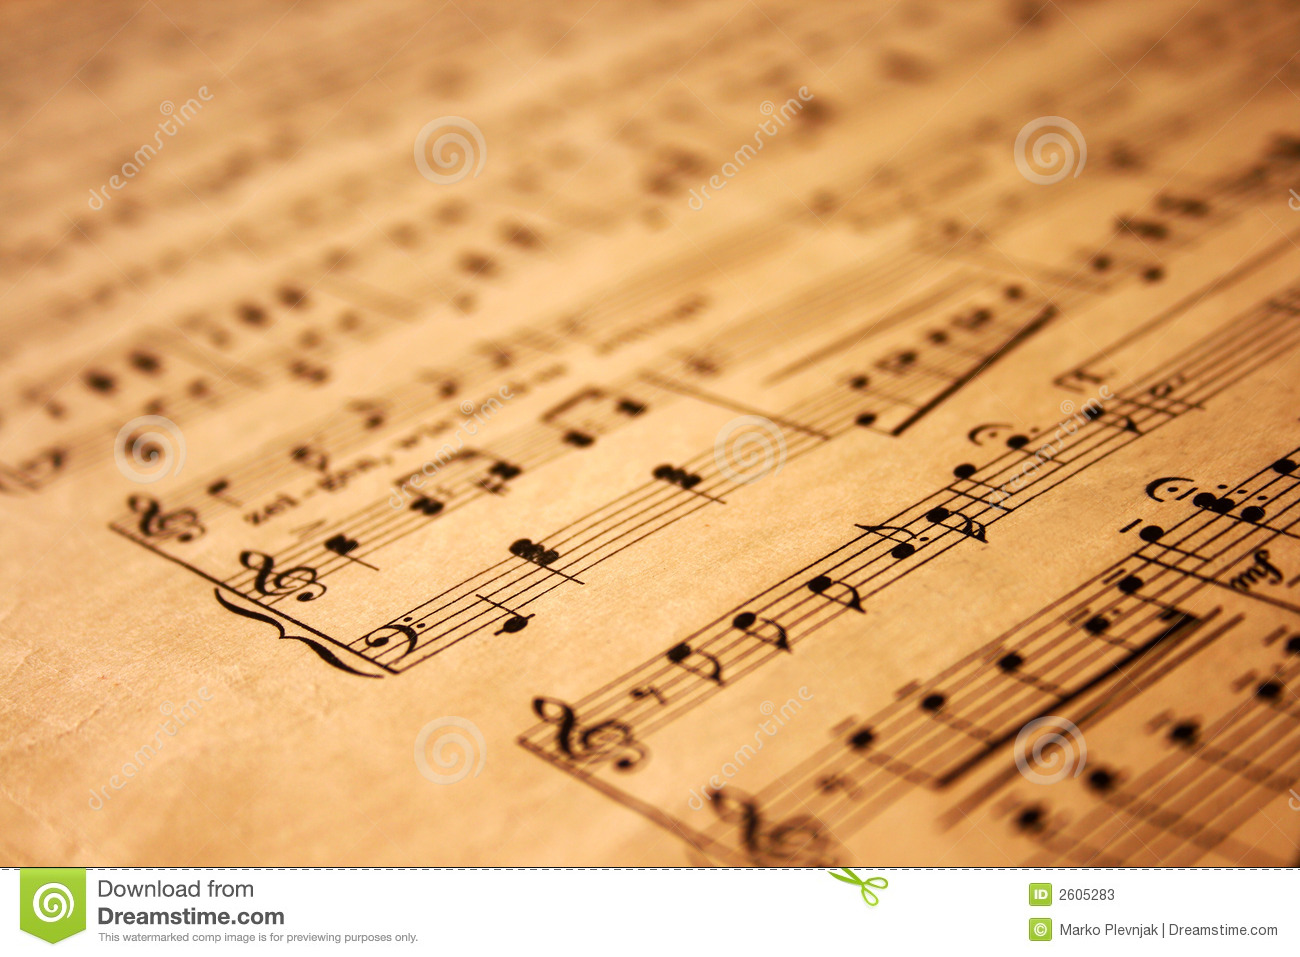 Music Notes On Grunge Paper Stock Photos - Image: 2605283